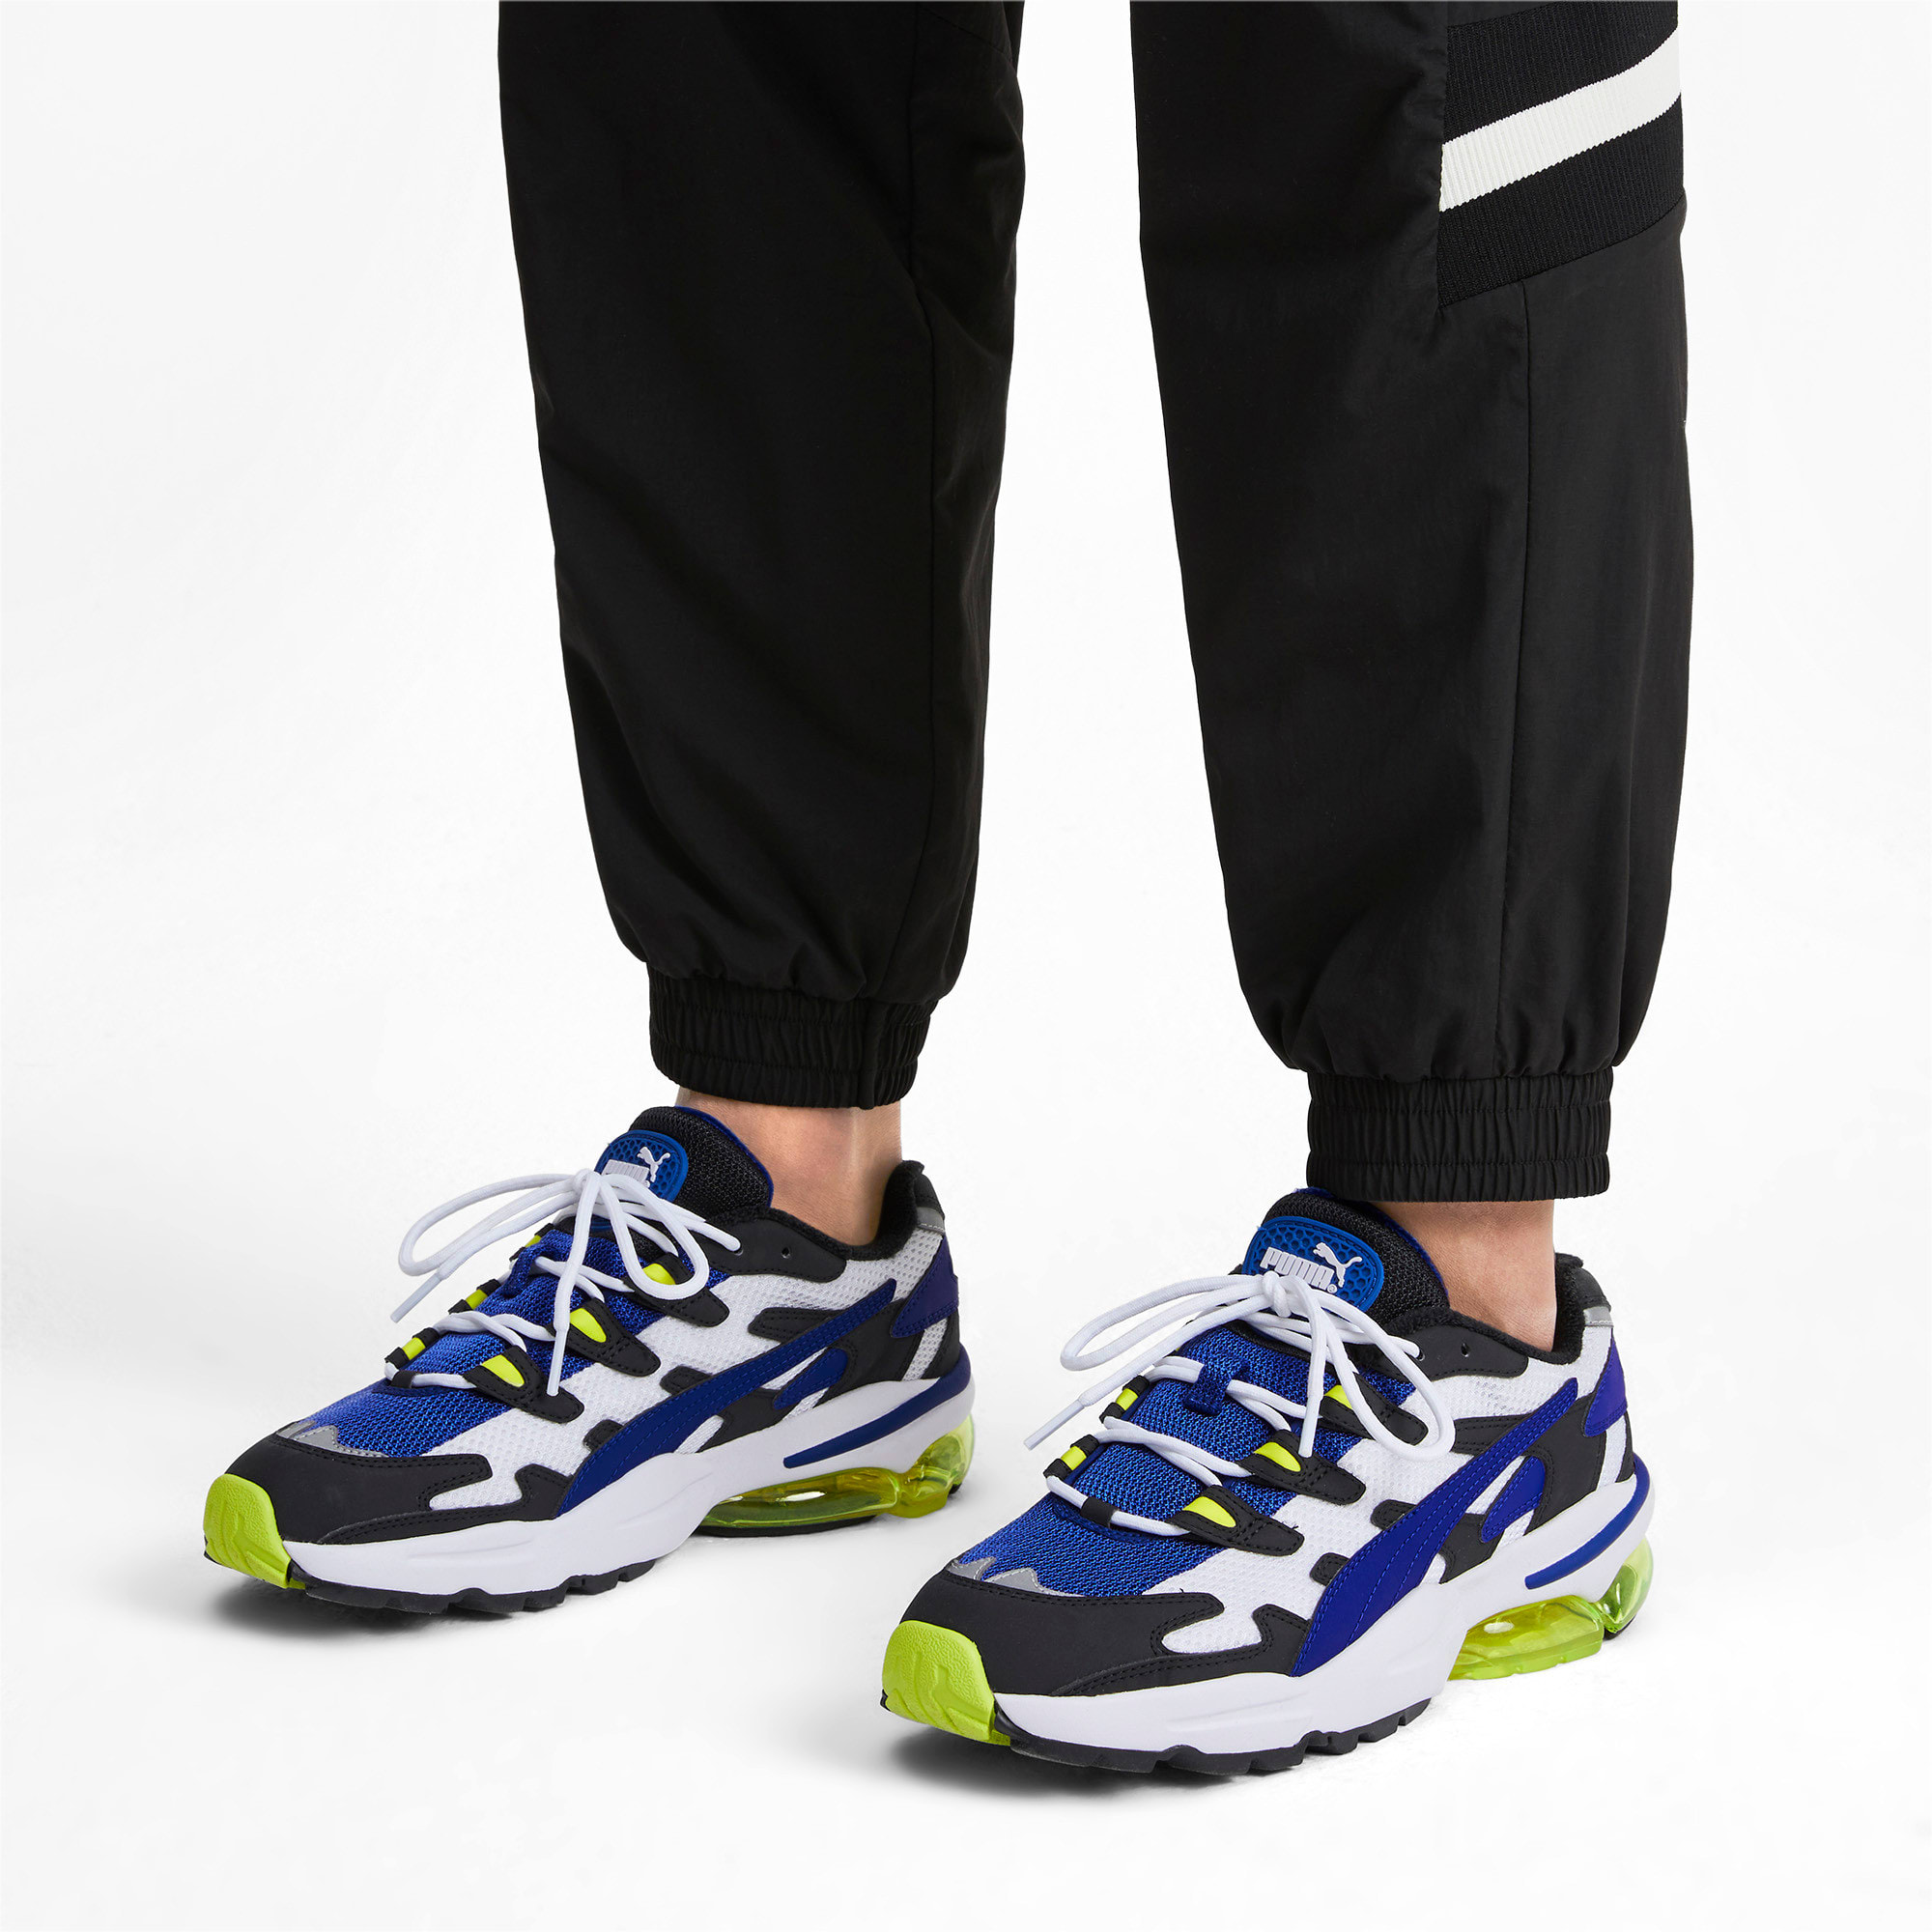 Thumbnail 2 of CELL Alien OG Trainers, Puma Black-Surf The Web, medium-IND